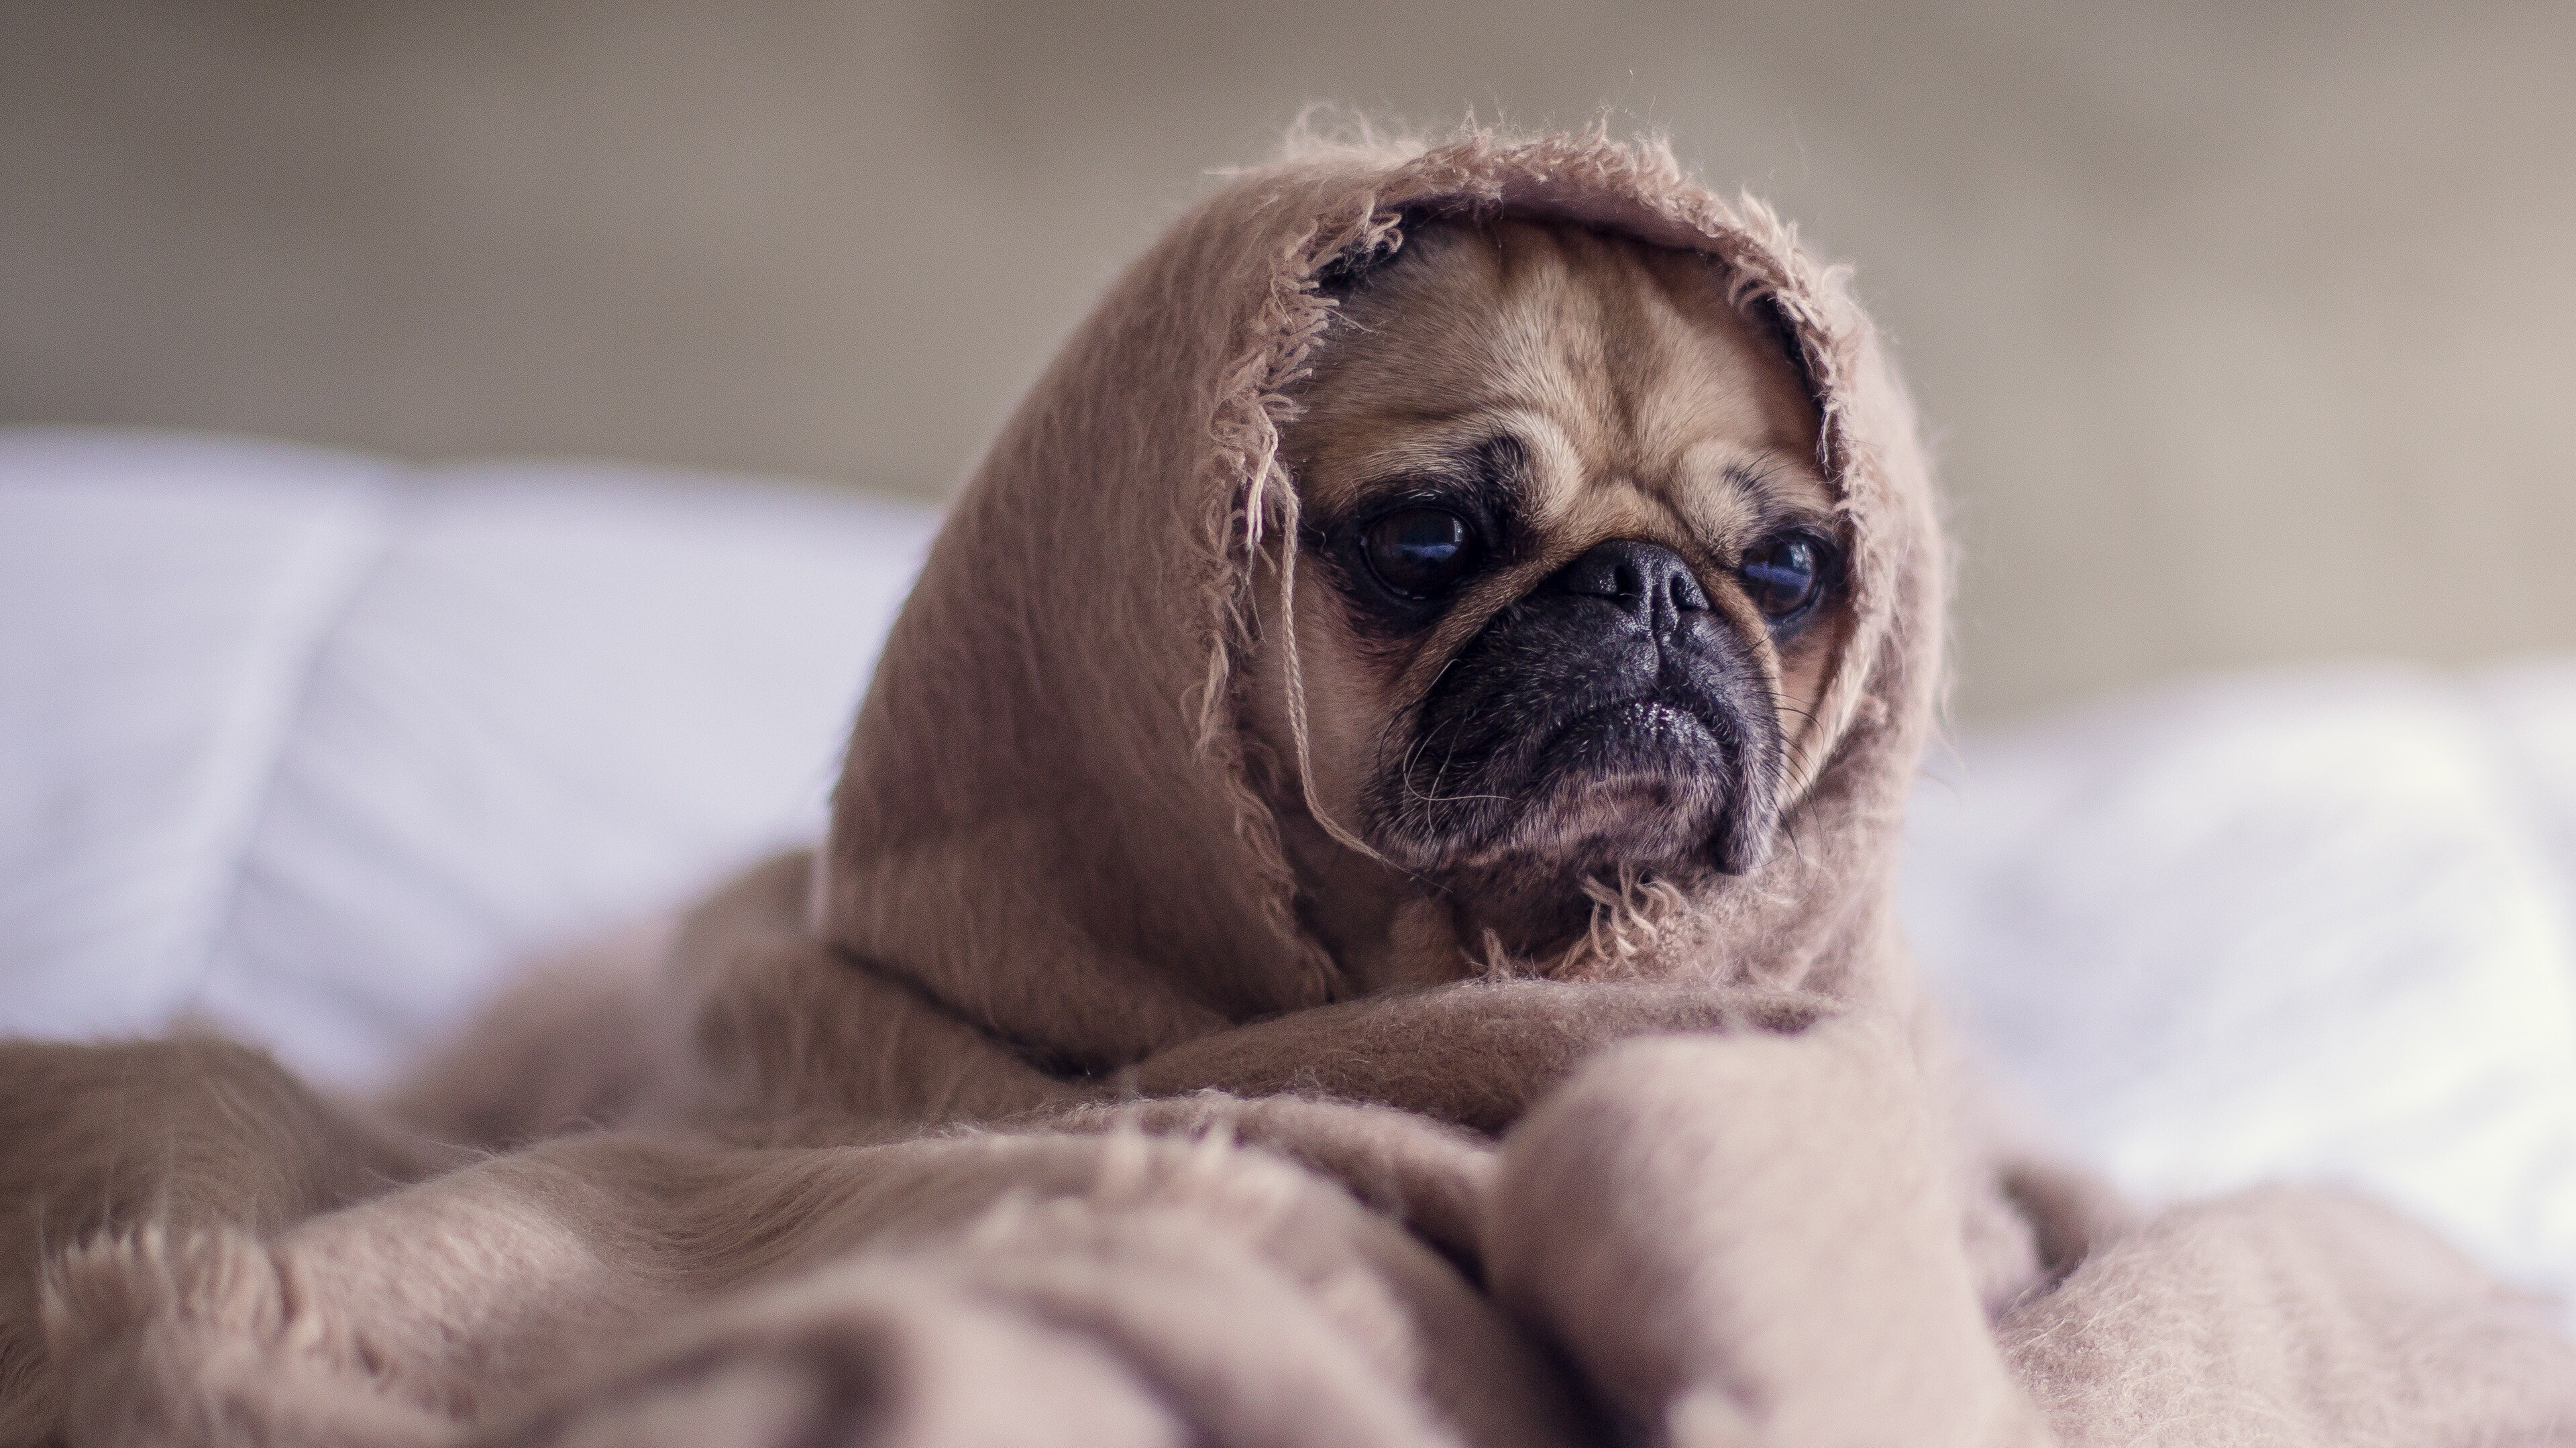 Nice Girls Vector Wallpaper Funny Dog Puppy Wrapped In Blanket 4k Wallpaper Hd